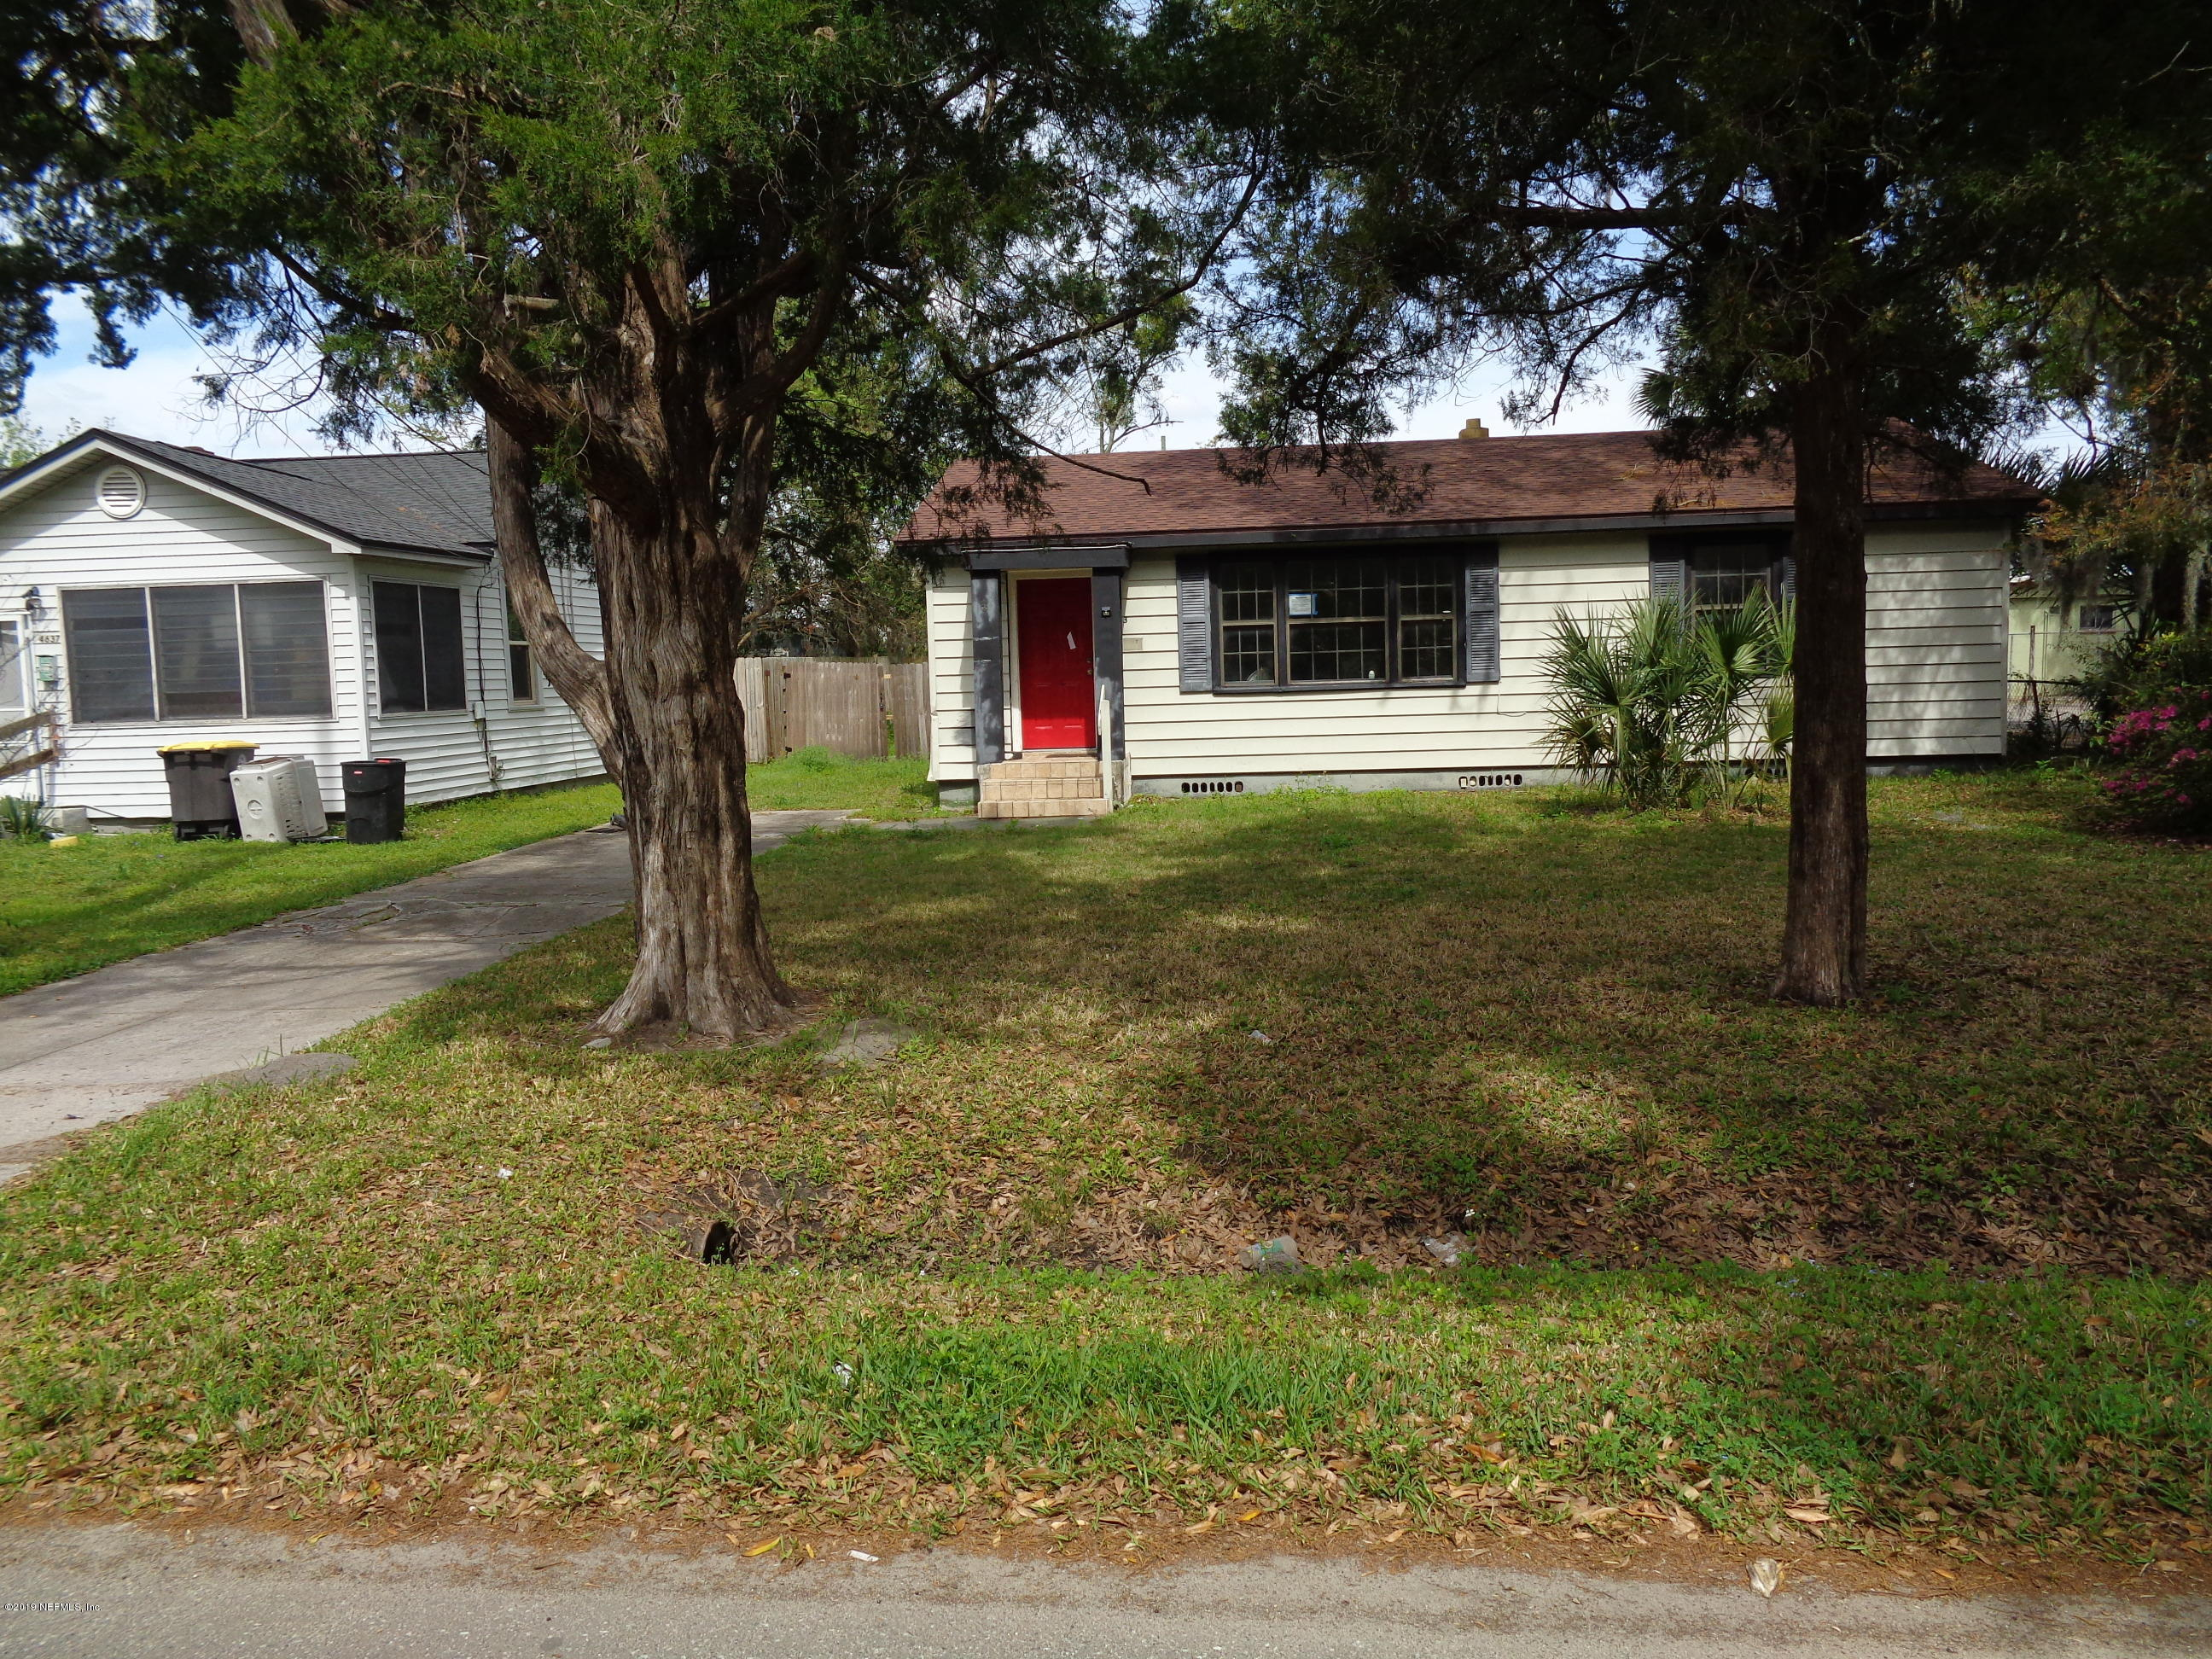 4633 PALMER, JACKSONVILLE, FLORIDA 32210, 4 Bedrooms Bedrooms, ,4 BathroomsBathrooms,Residential - single family,For sale,PALMER,984497